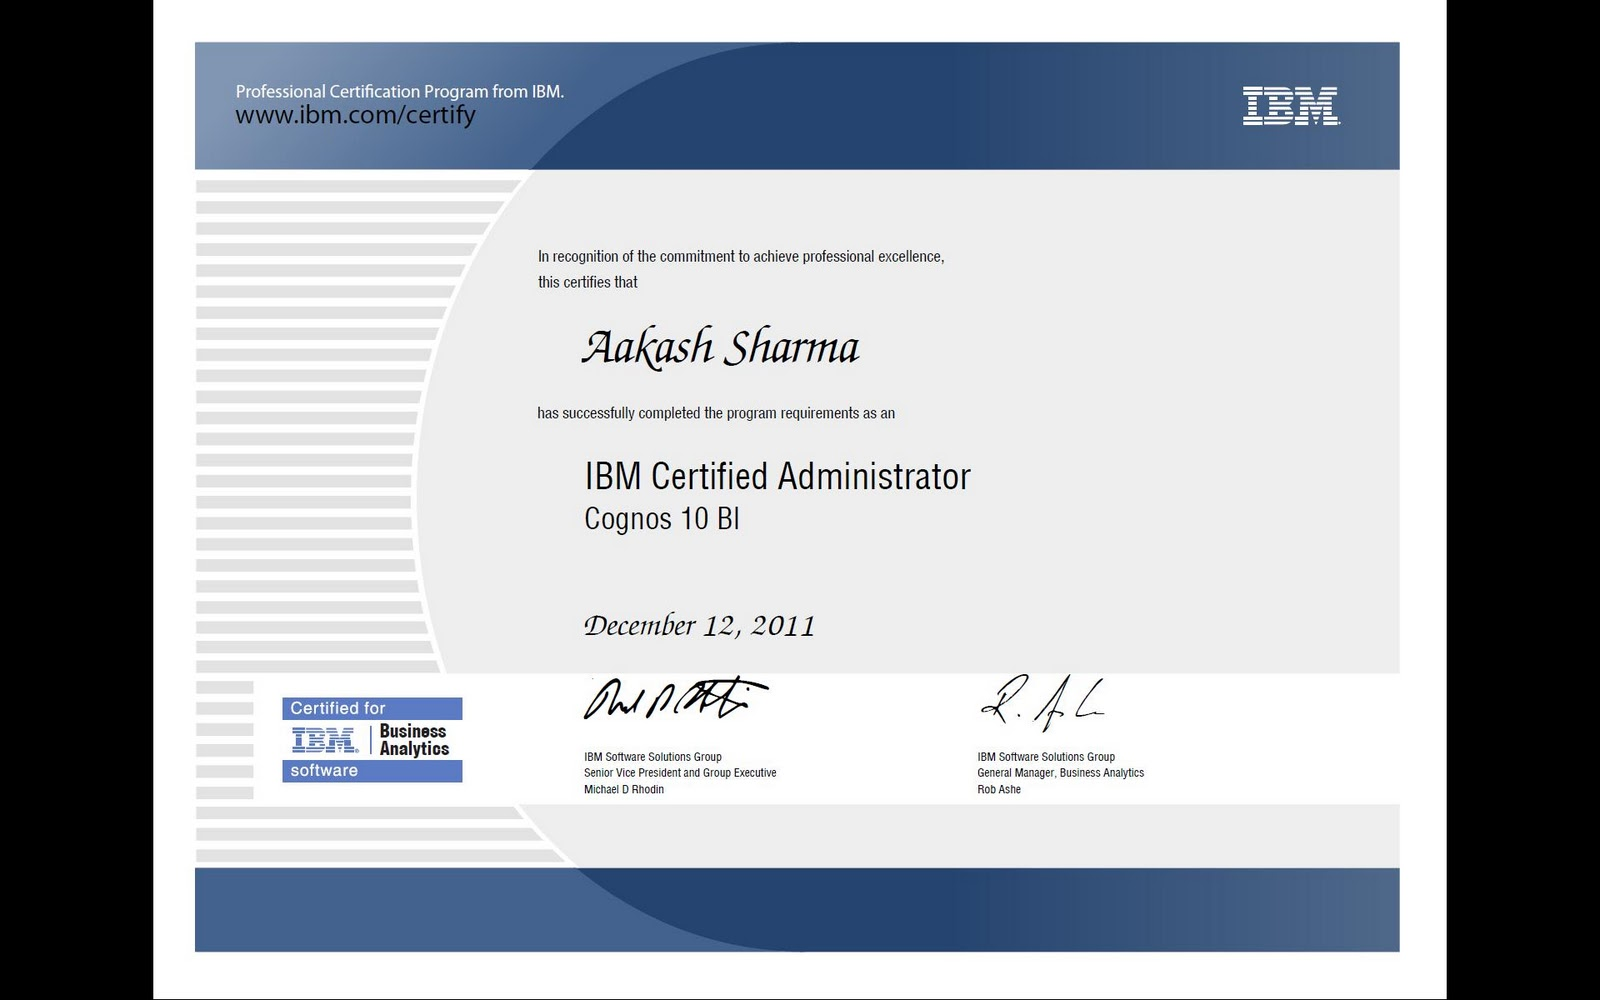 Ibm cognos server ibm cognos 10 bi administrator certification update heres what the certificate looks like just to get you excited 1betcityfo Gallery